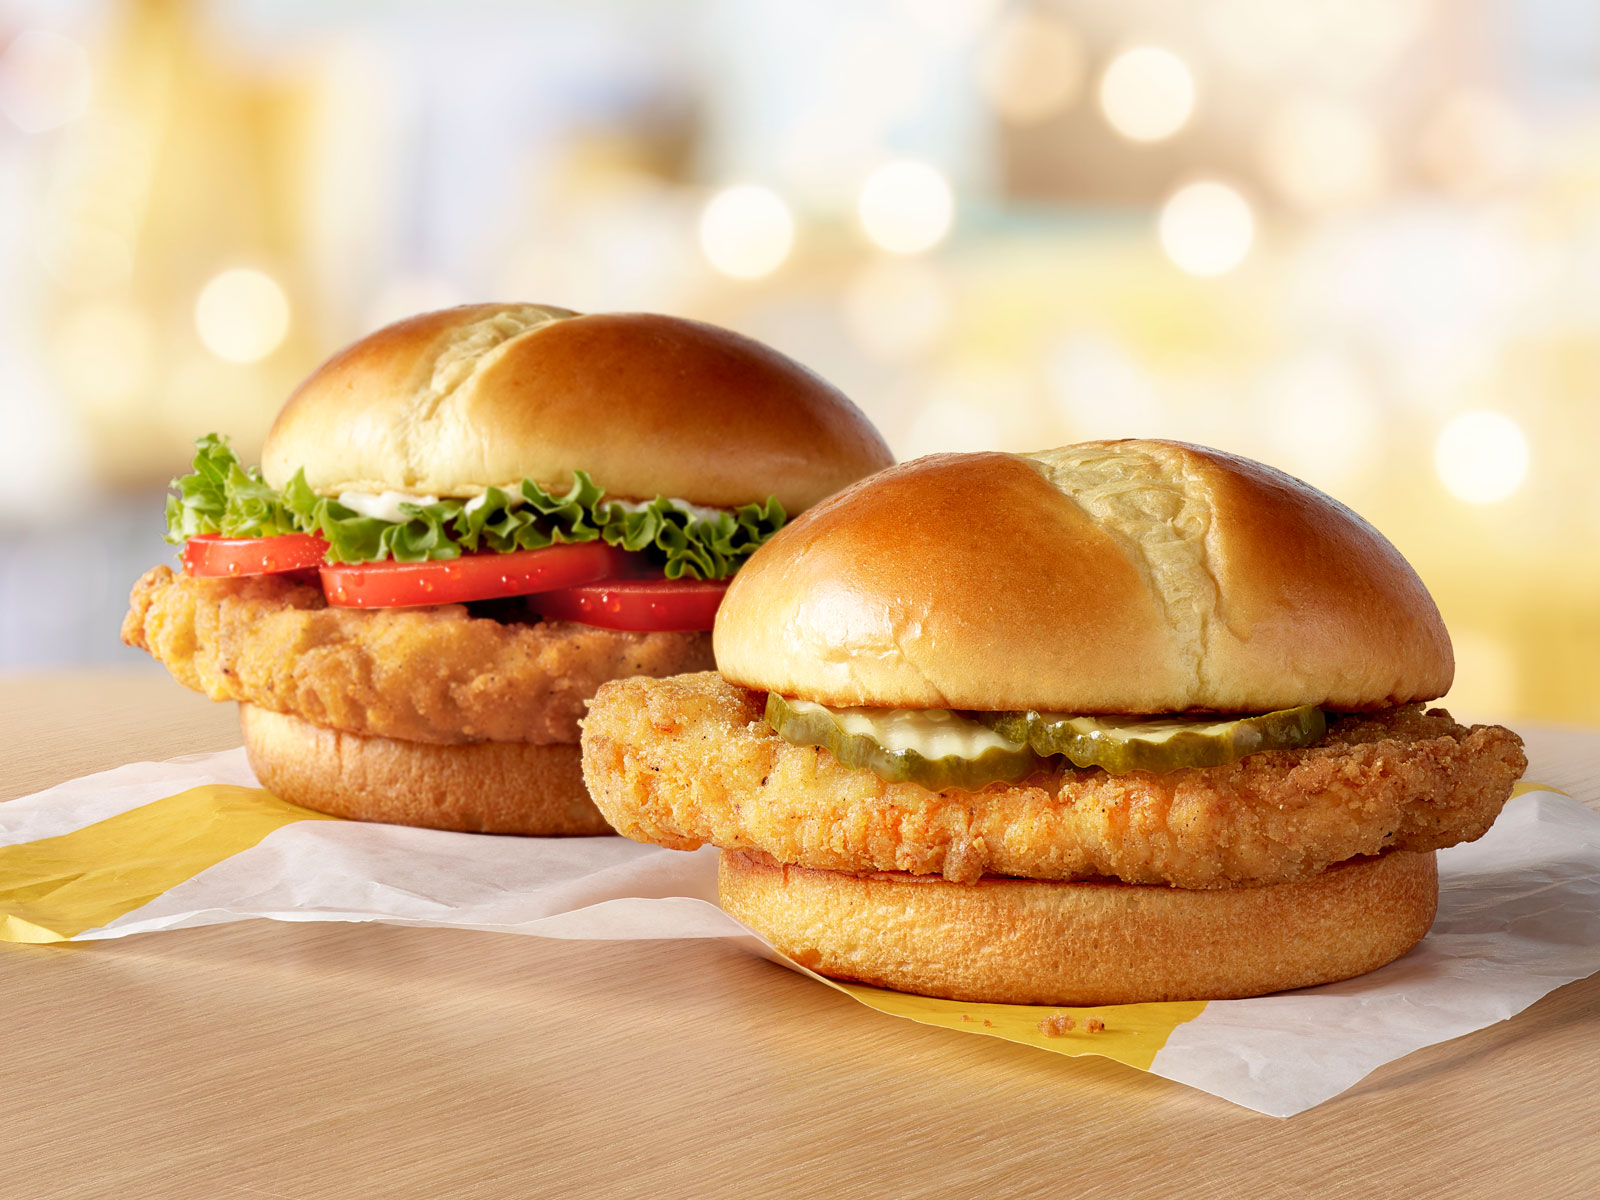 mcdonalds-chicken-sandwiches-FT-BLOG1119.jpg